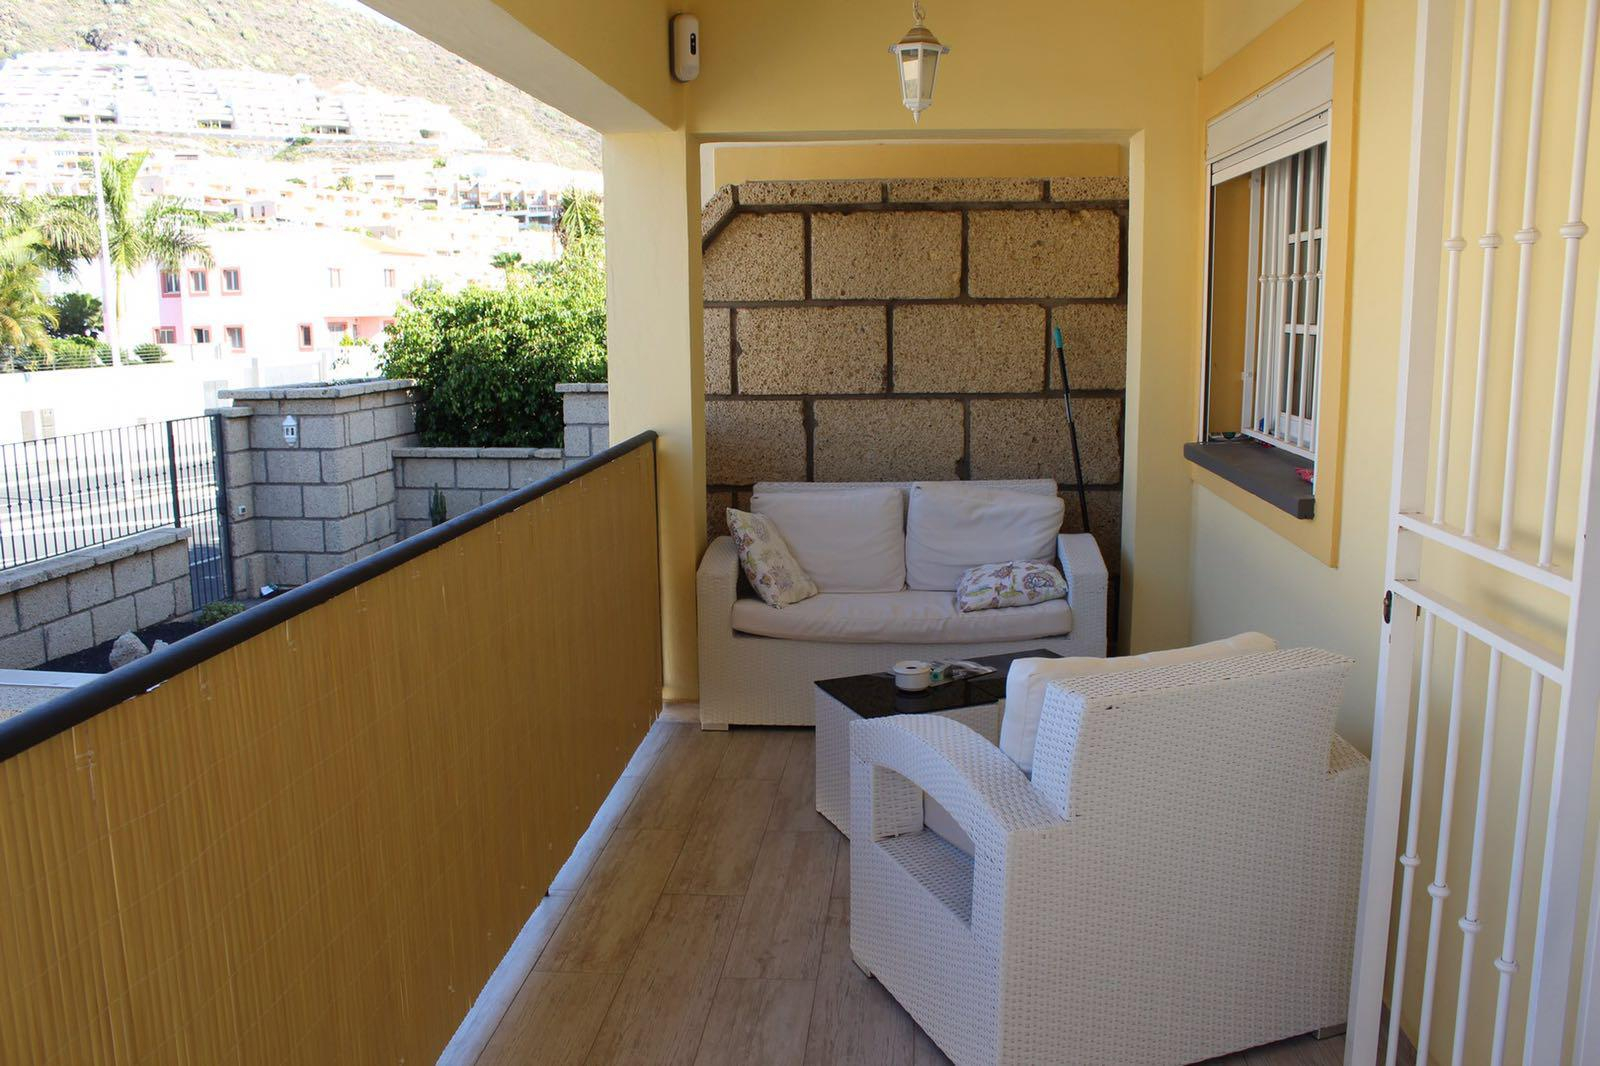 Properties for Sale in Tenerife, Canary Islands, Spain | SylkWayStar Real Estate. Townhouse 5 bedrooms Madroñal. Image-25156